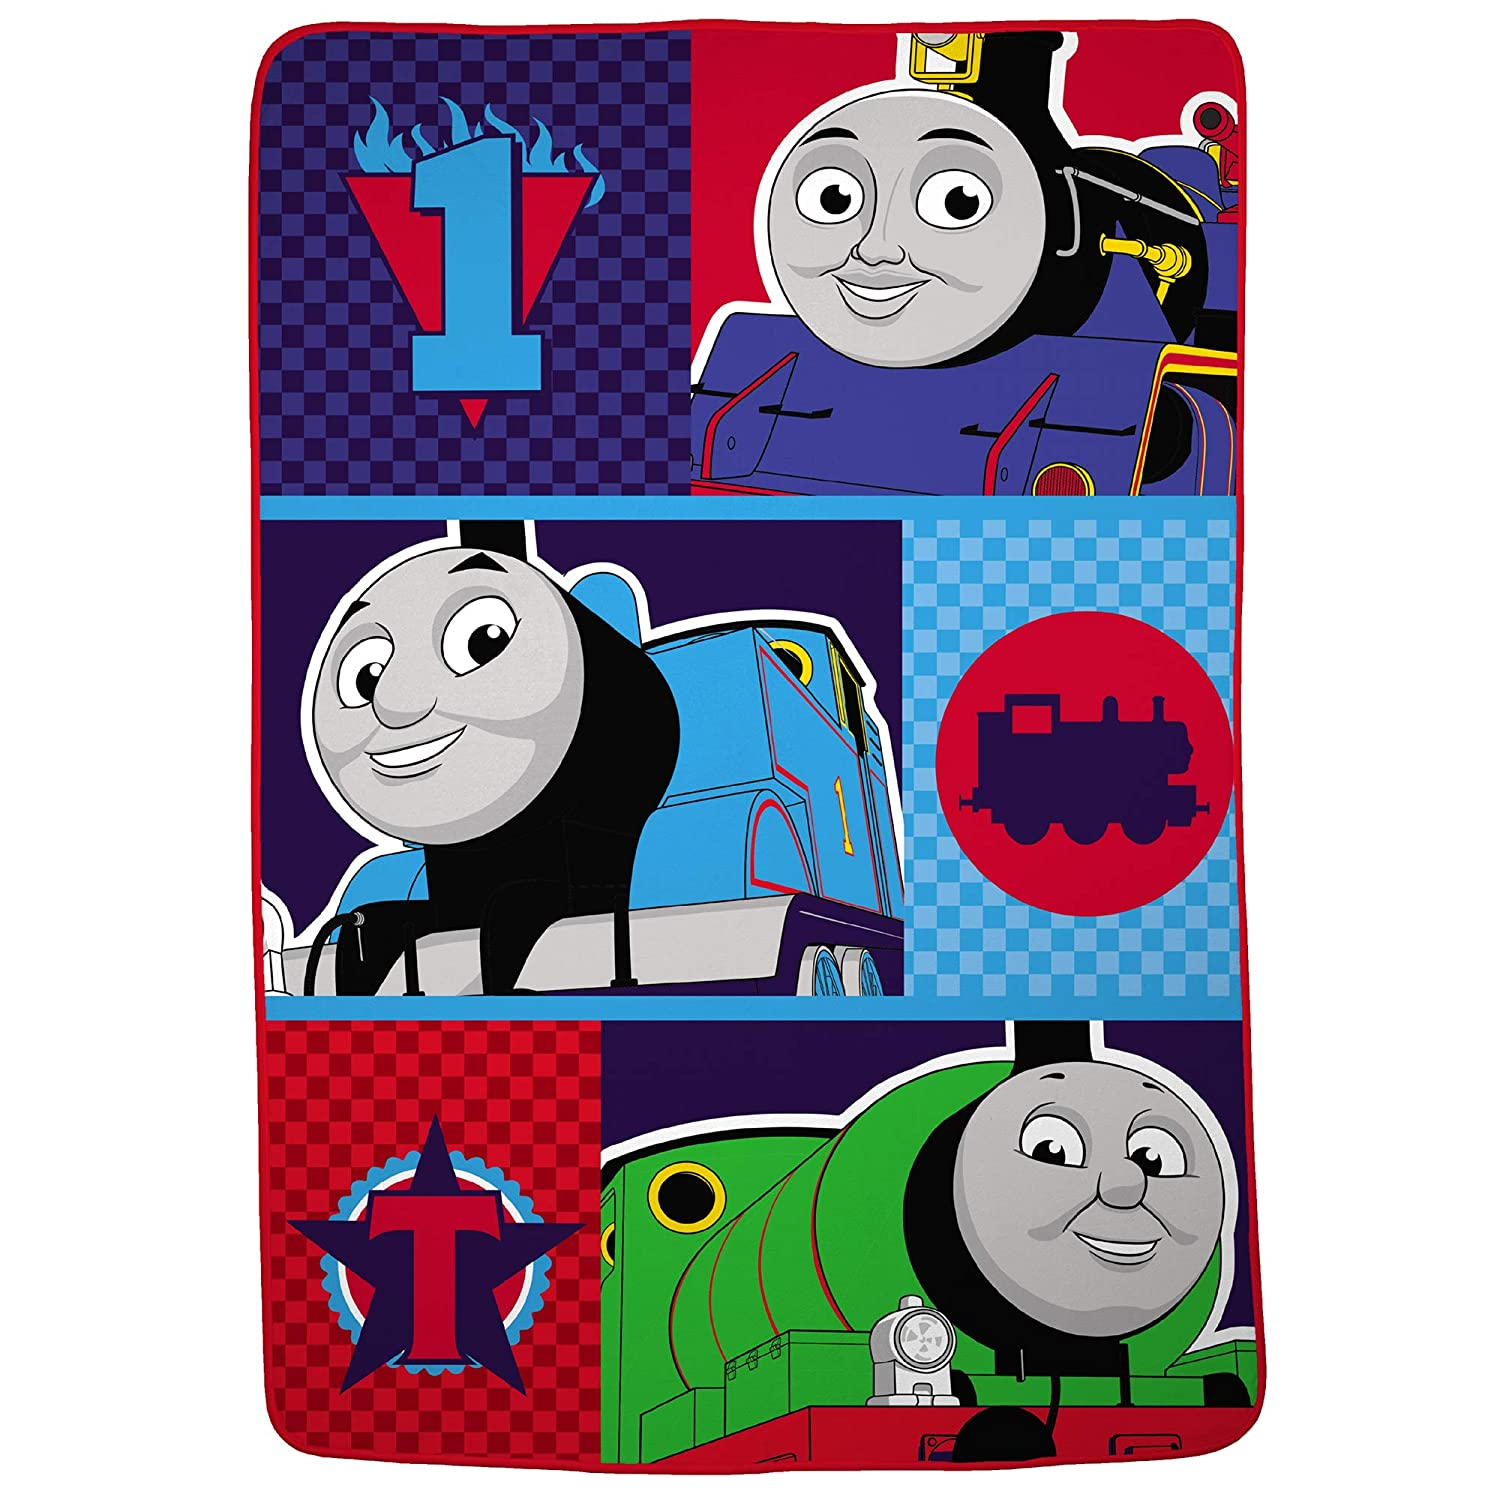 "Franco Kids Bedding Super Soft Plush Microfiber Blanket, Twin/Full Size 62"" x 90"", Thomas and Friends"